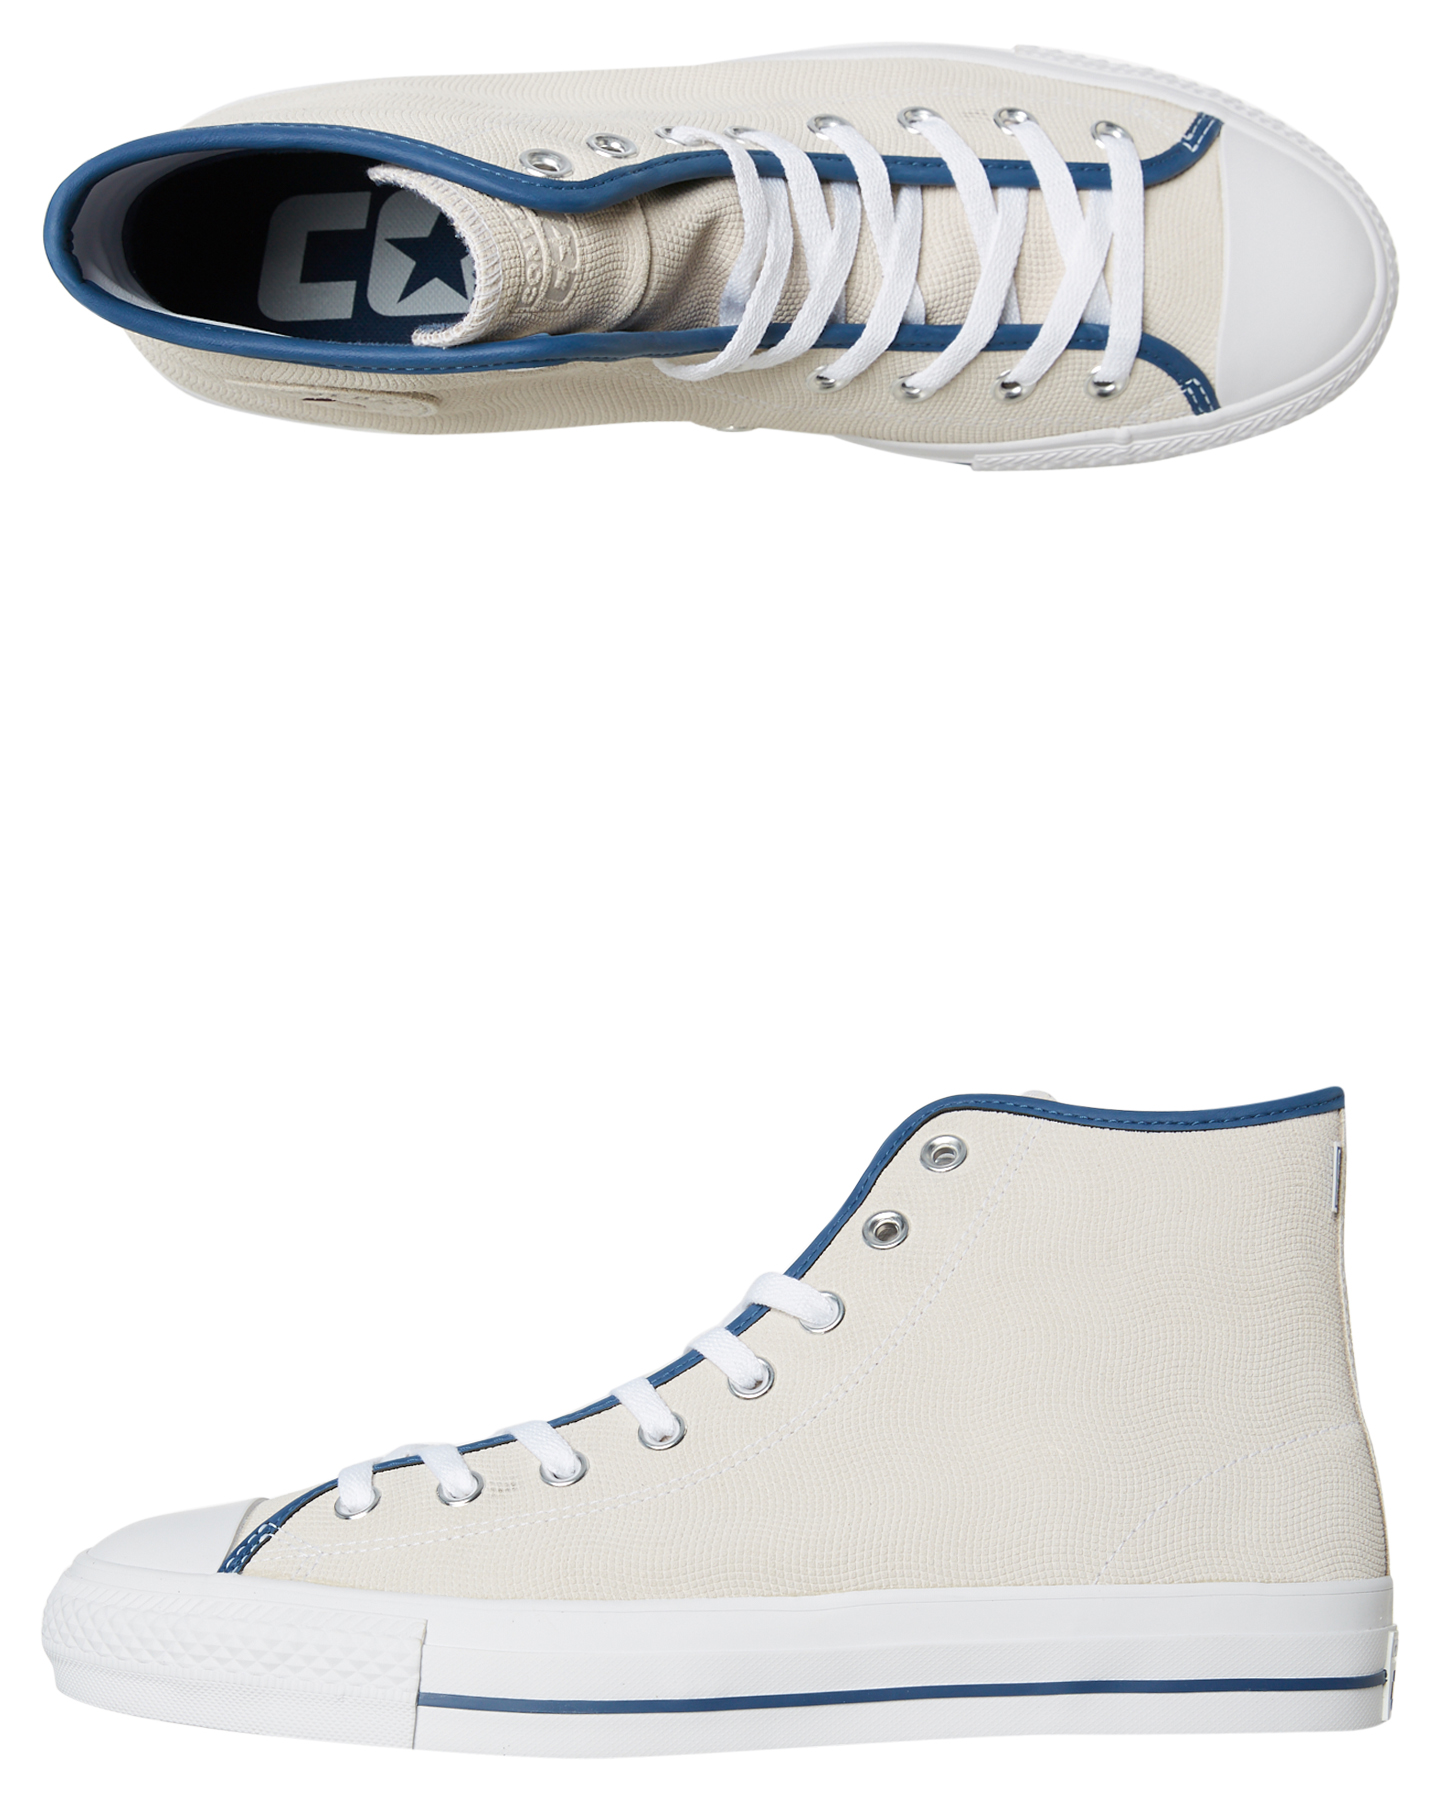 Converse Mens Chuck Taylor All Star Pro Suede Shoe White